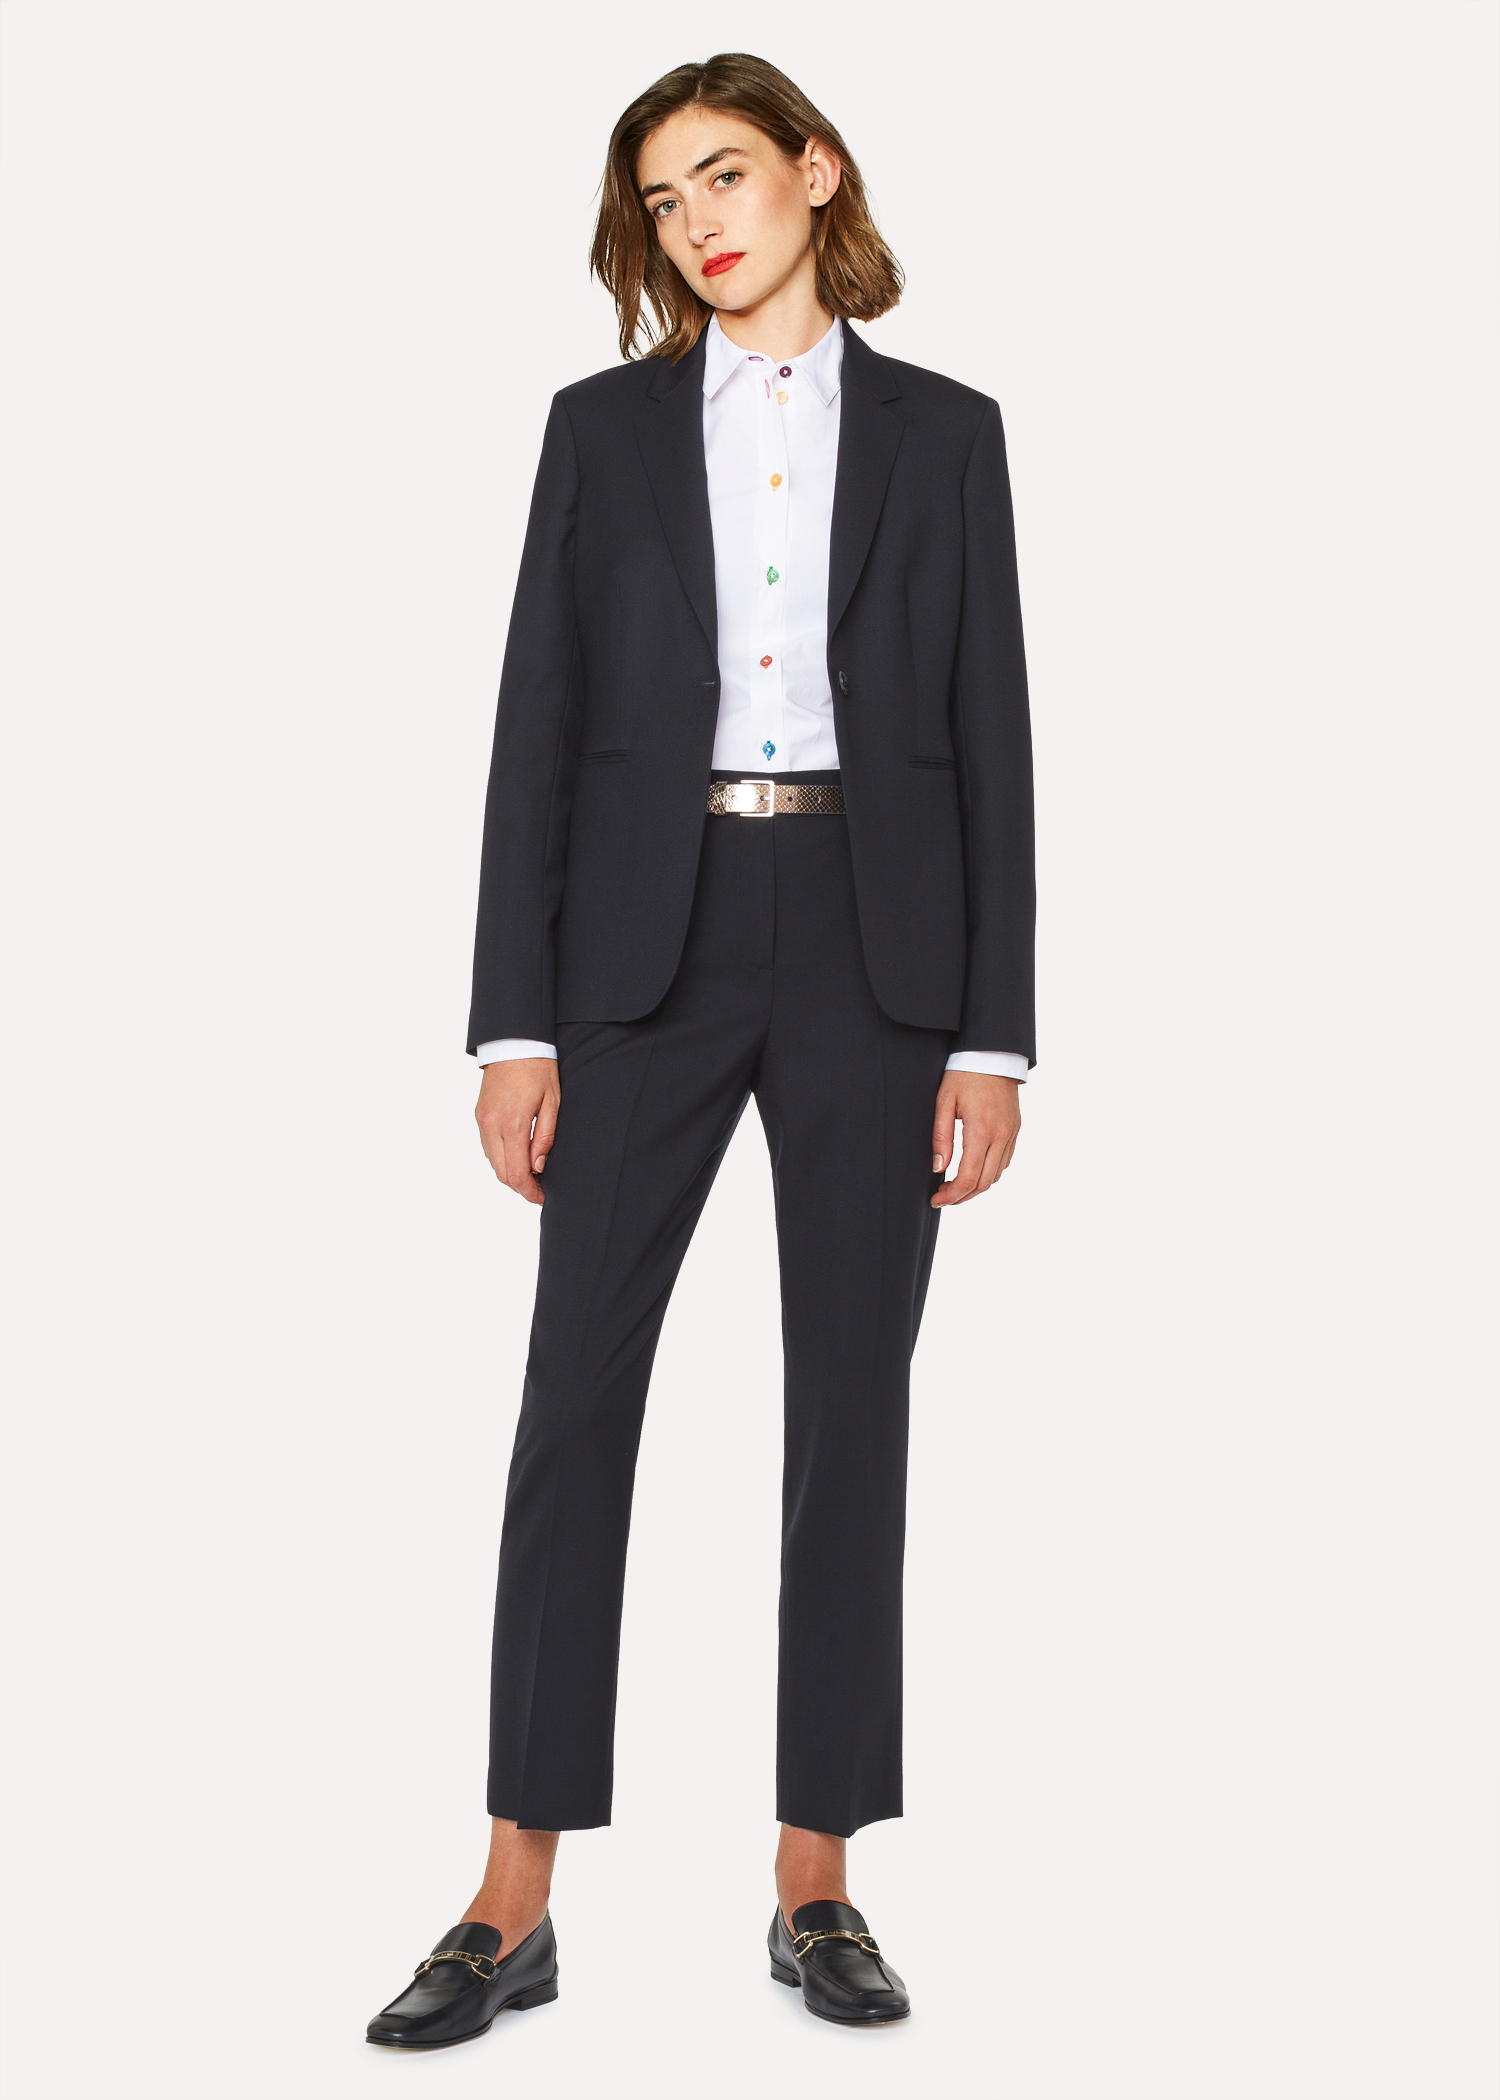 A Suit To Travel In - Women s Navy One-Button Wool Suit - Paul Smith ... 4d3197e75b